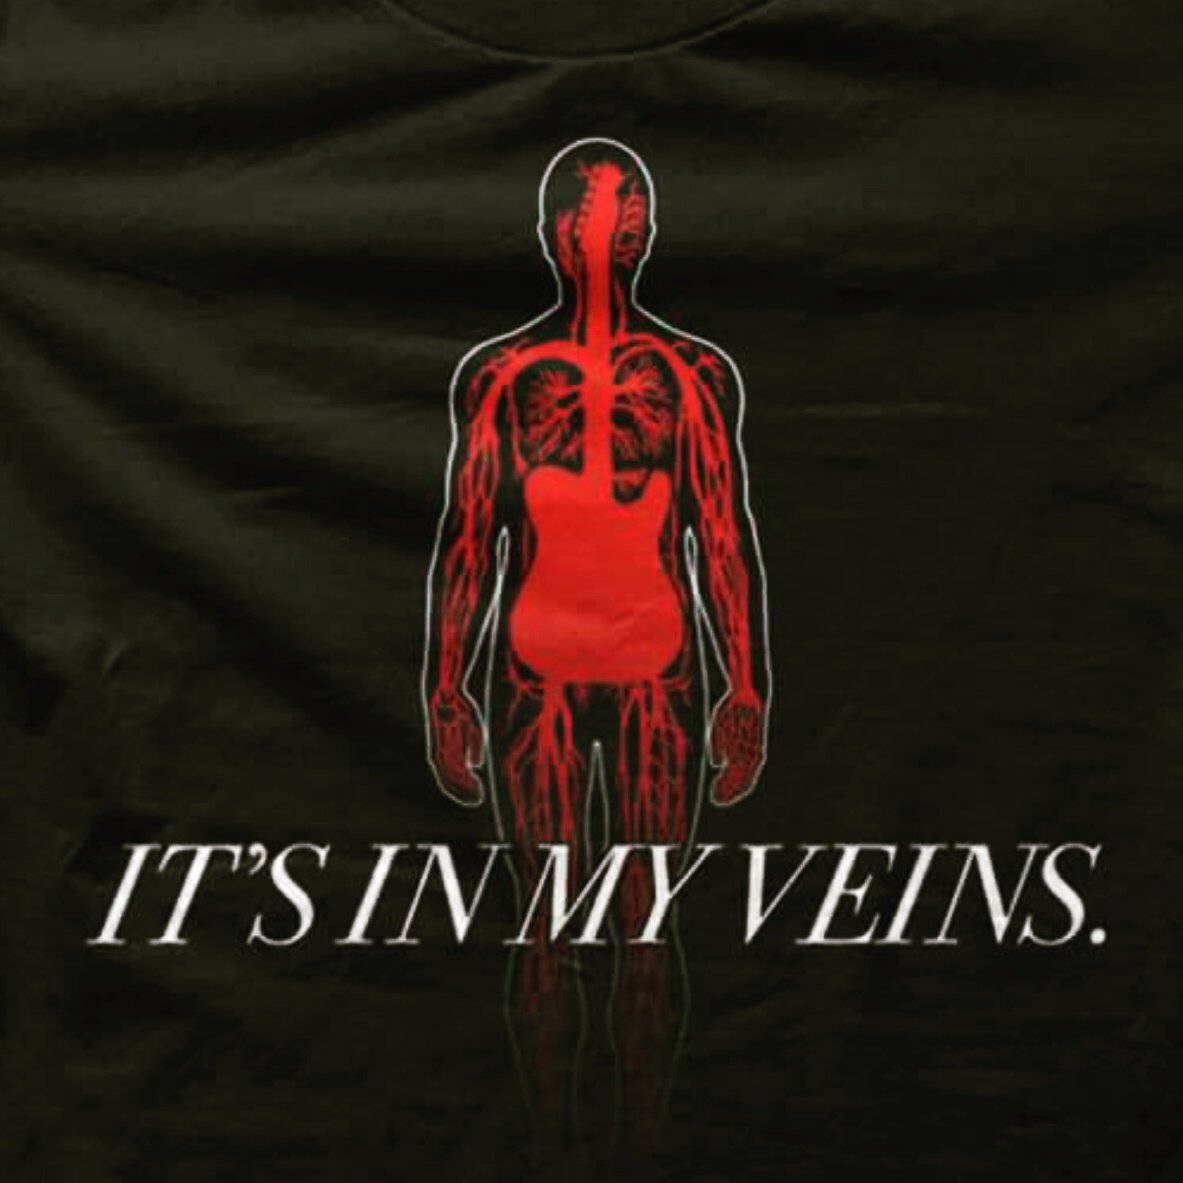 This shirt sums it up pretty good! #inmyveins #guitargeek #luthiers #music4life #musicshirt #guitarshirt #truth<br>http://pic.twitter.com/I7bT6Lo2i4